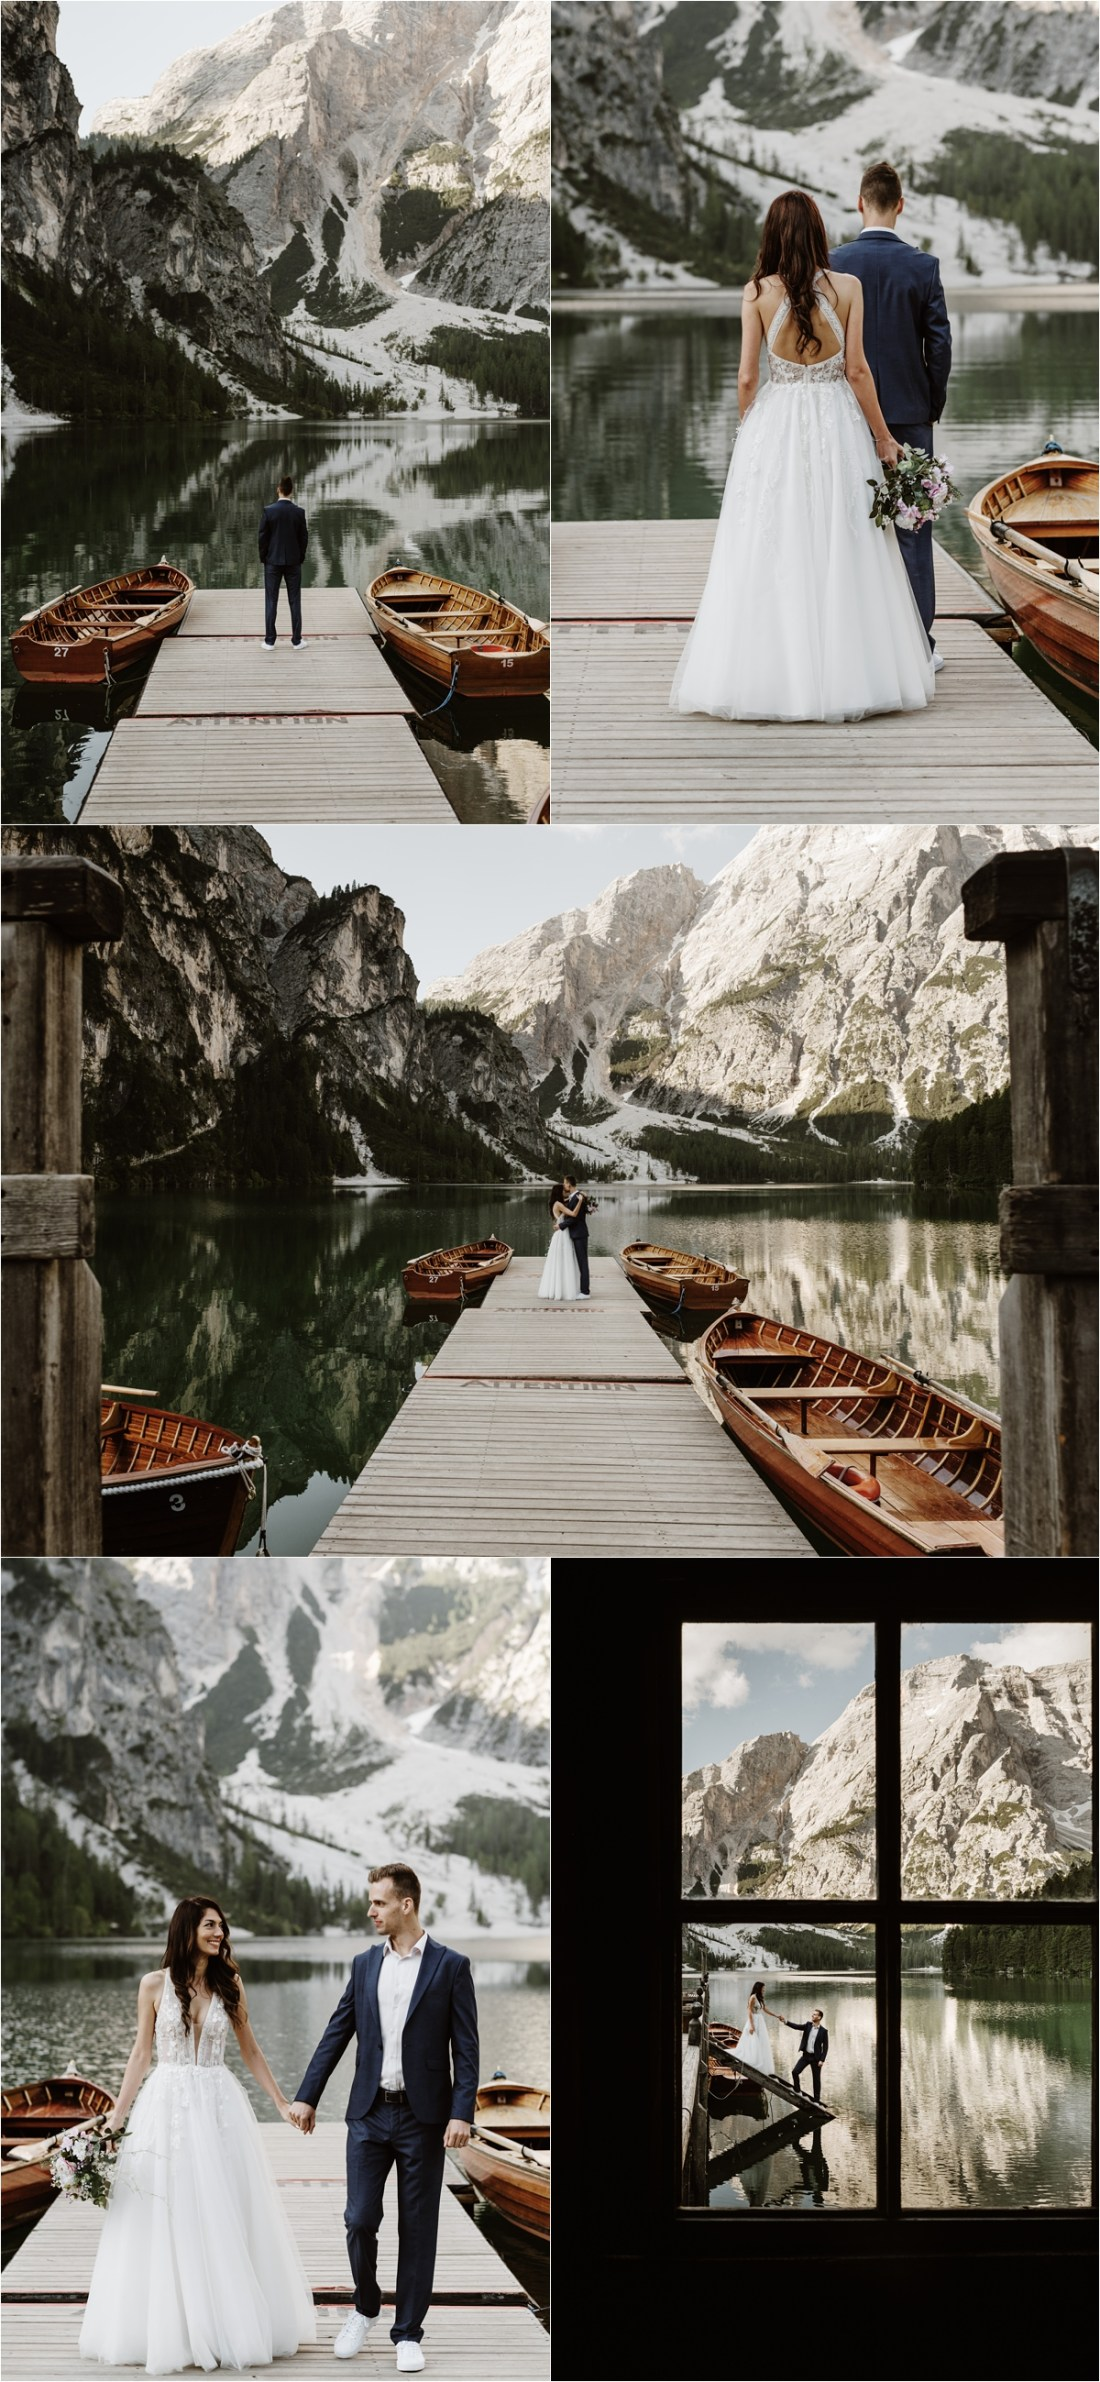 A first look at the boathouse on Lago di Braies. Photography by Wild Connections Photography